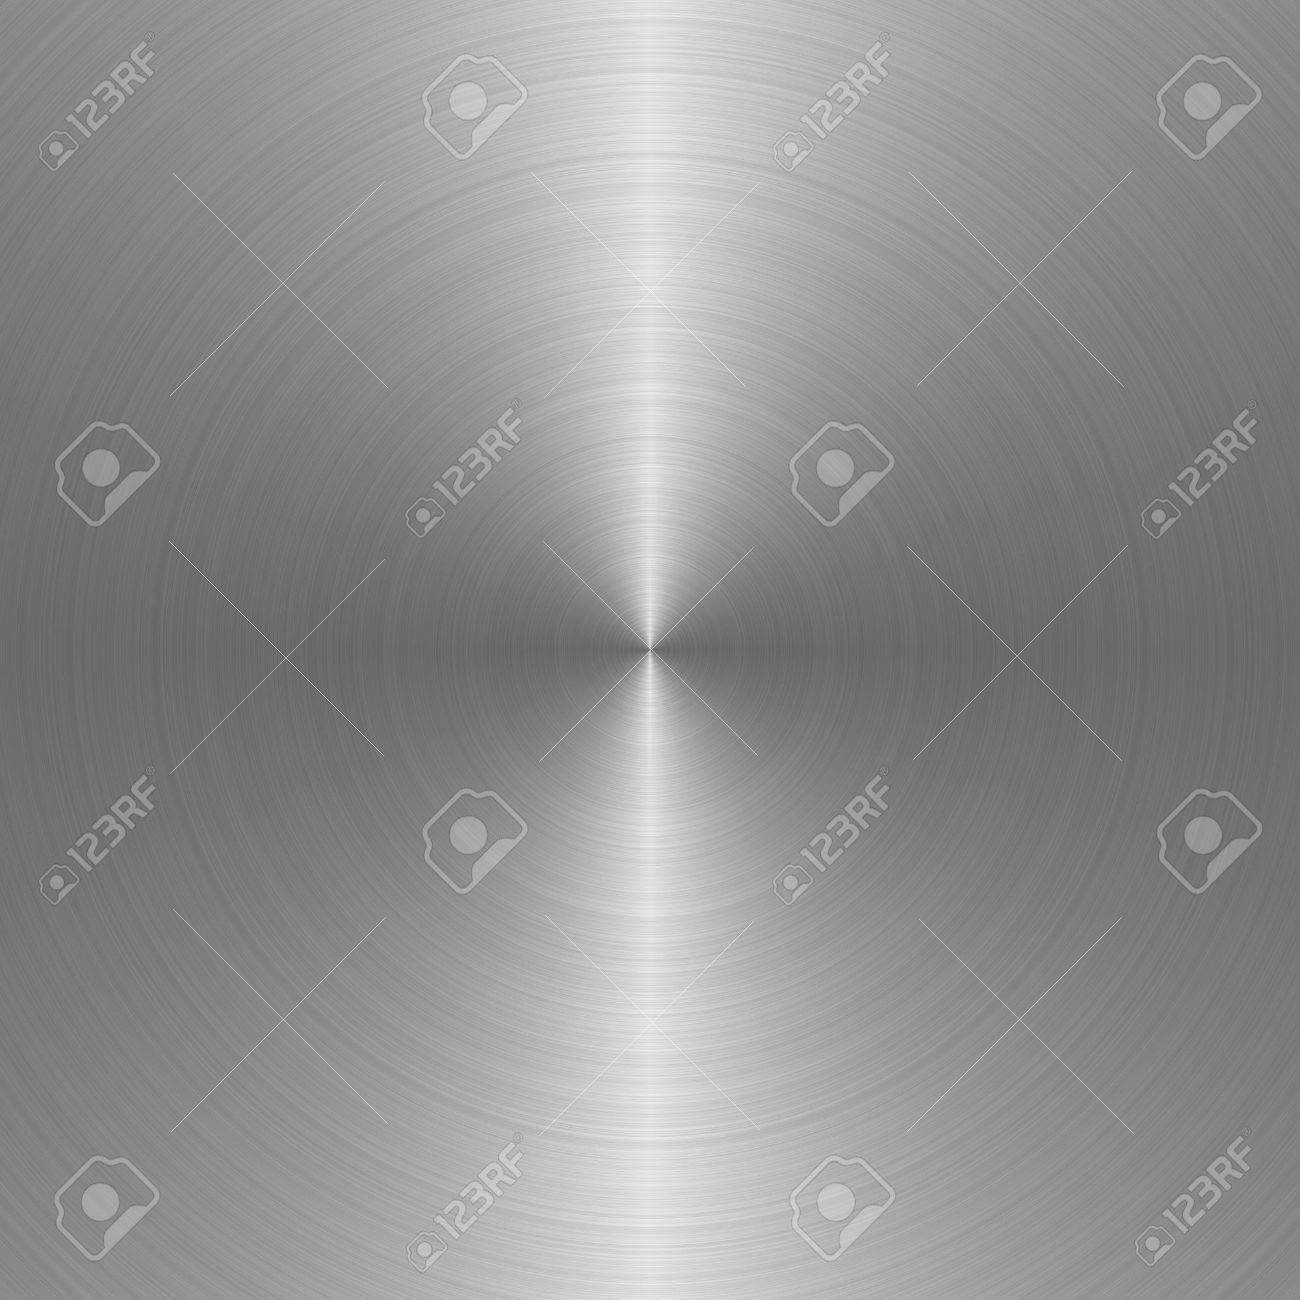 circular brushed steel background with central highlight Stock Photo - 3089920